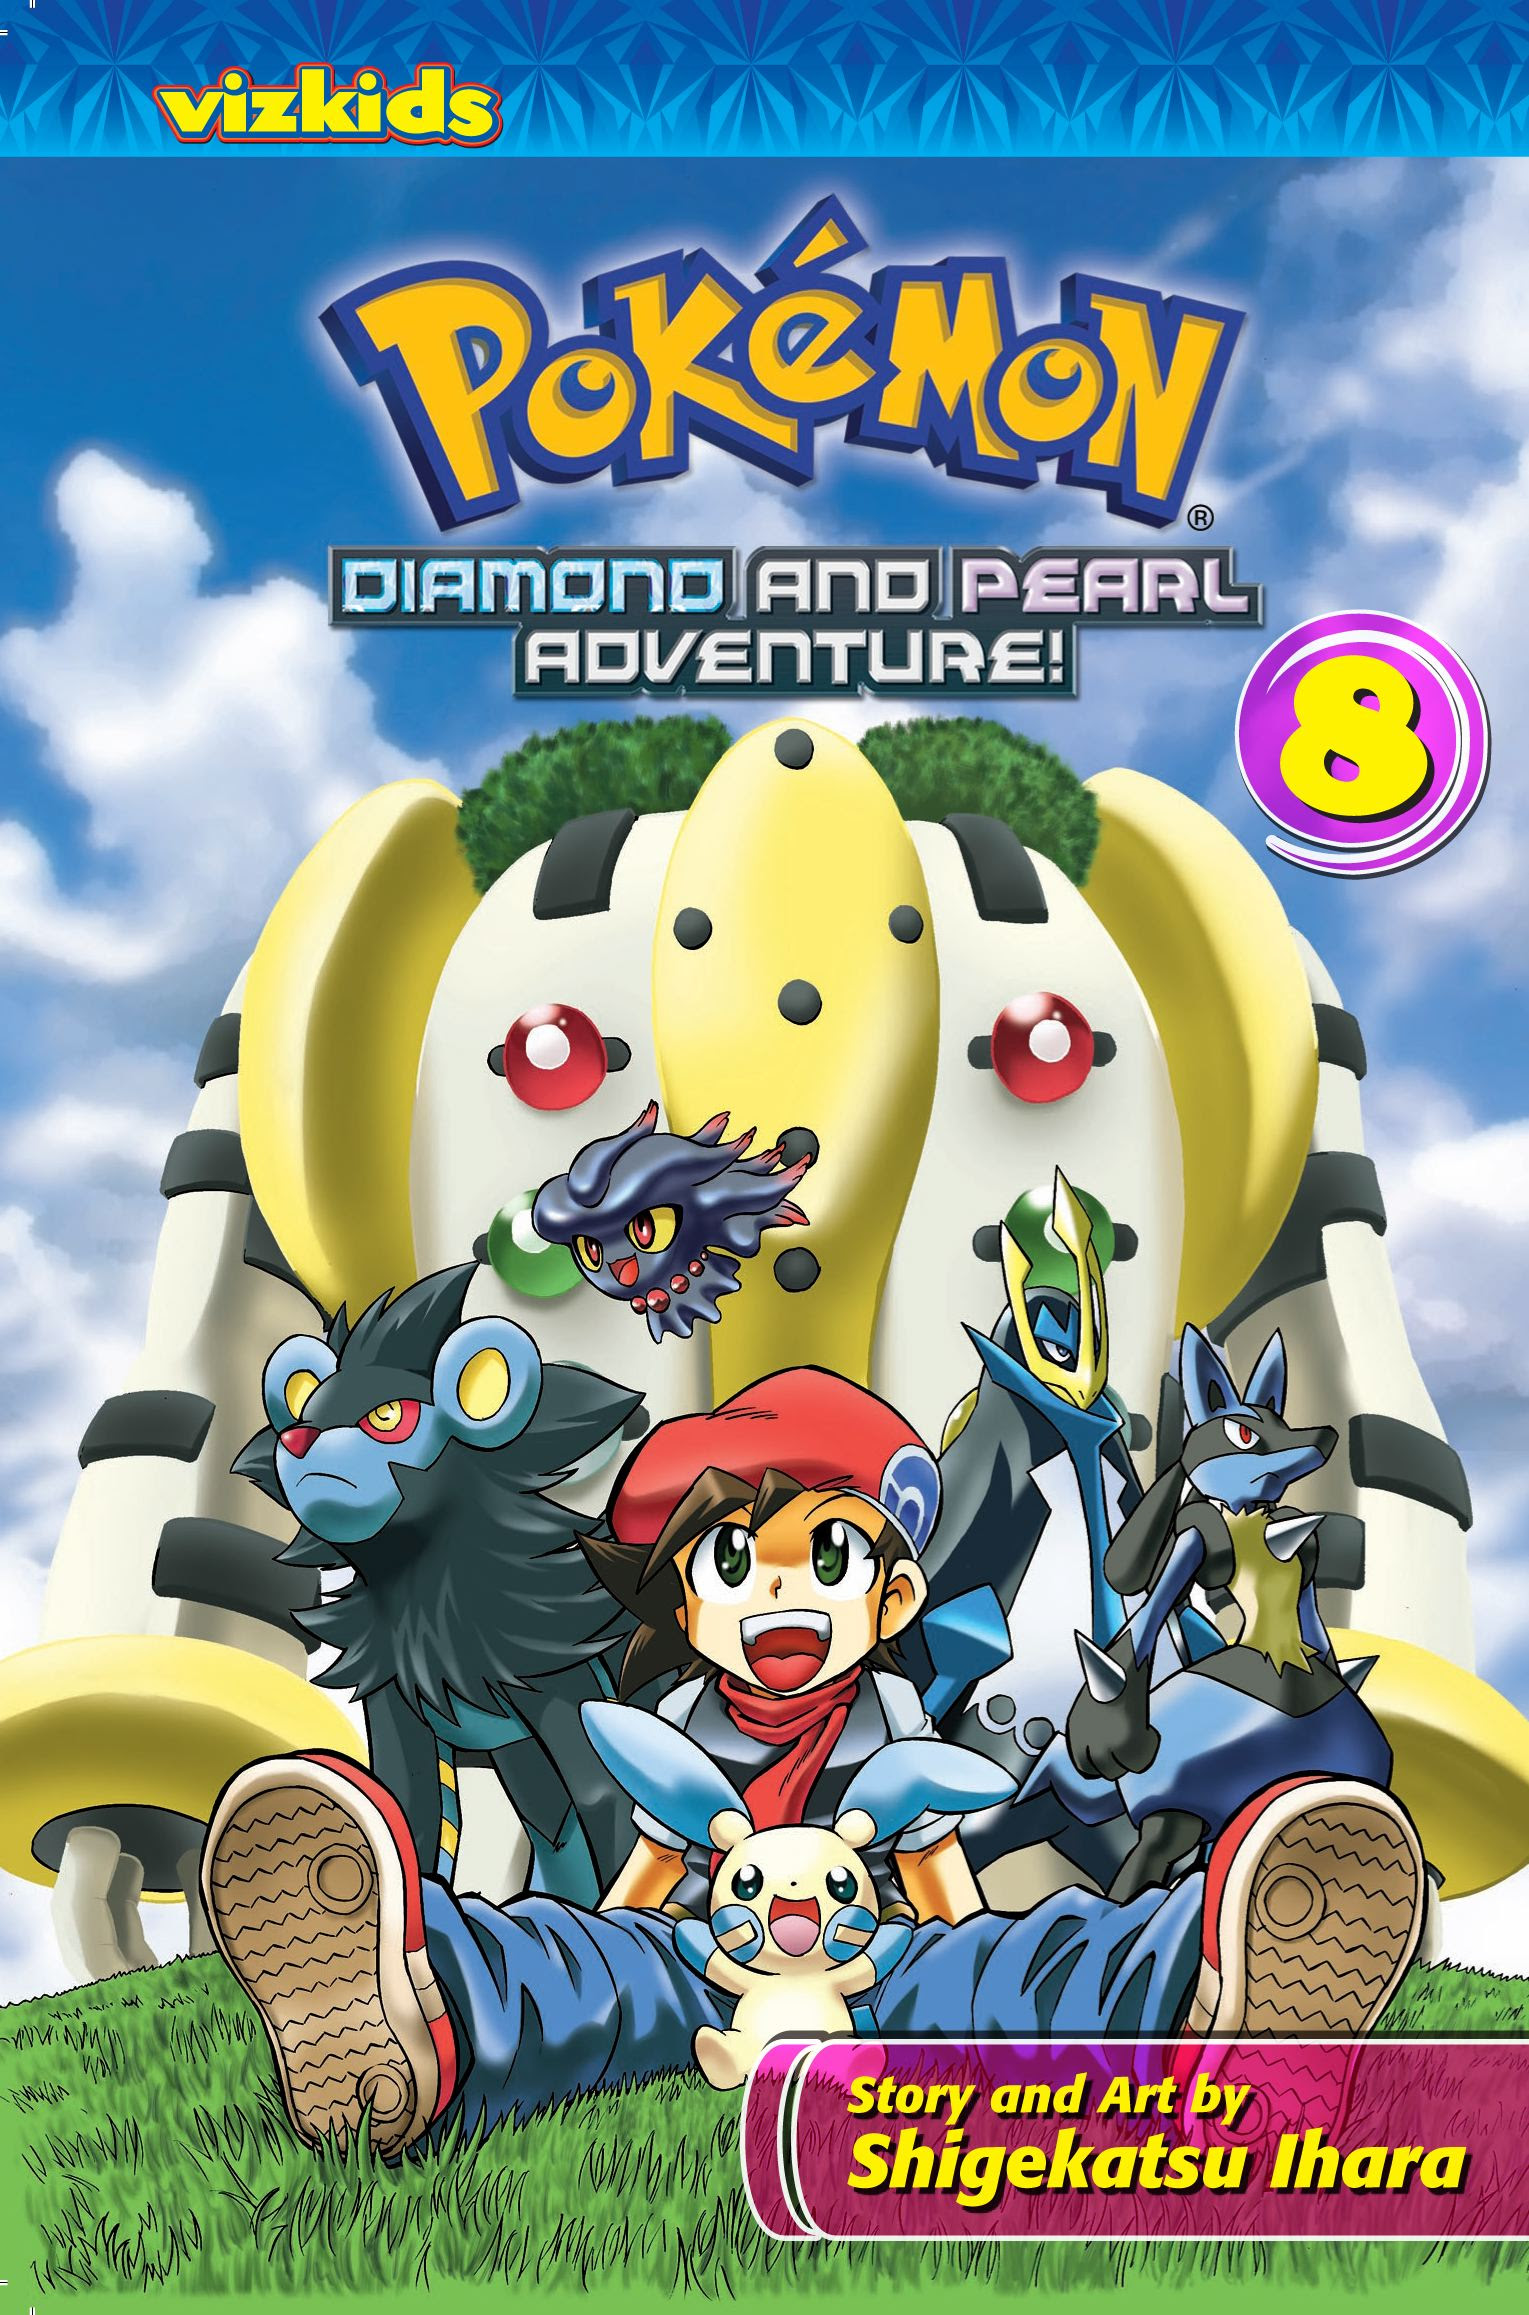 Pokémon: Diamond and Pearl Adventure!, Vol. 8  Book by